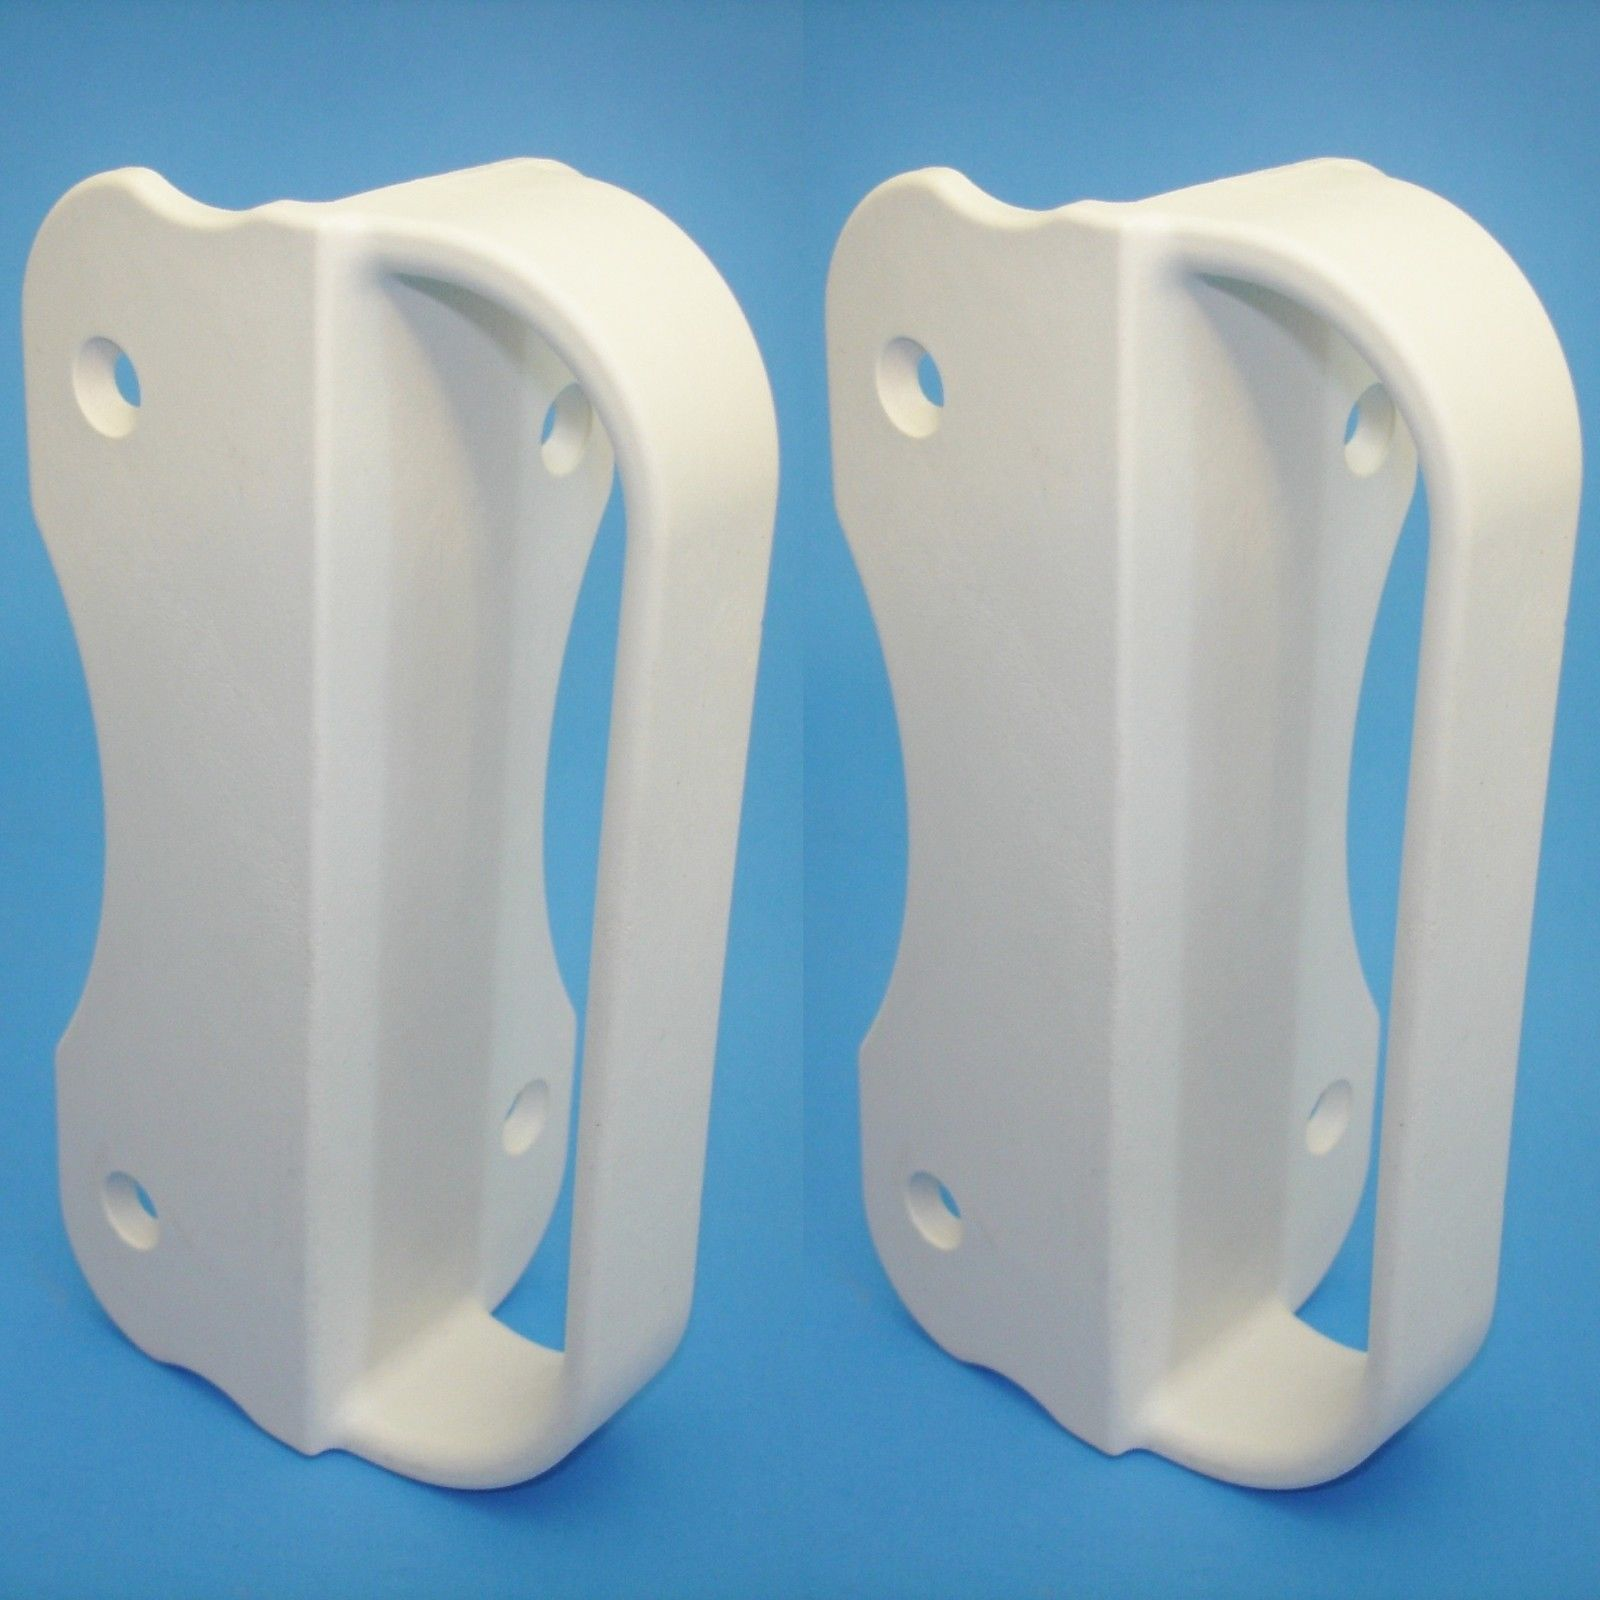 Universal NYLON GATE HANDLE -WHITE: Pull works with Wood, Metal, or Vinyl gates. 2 PACK